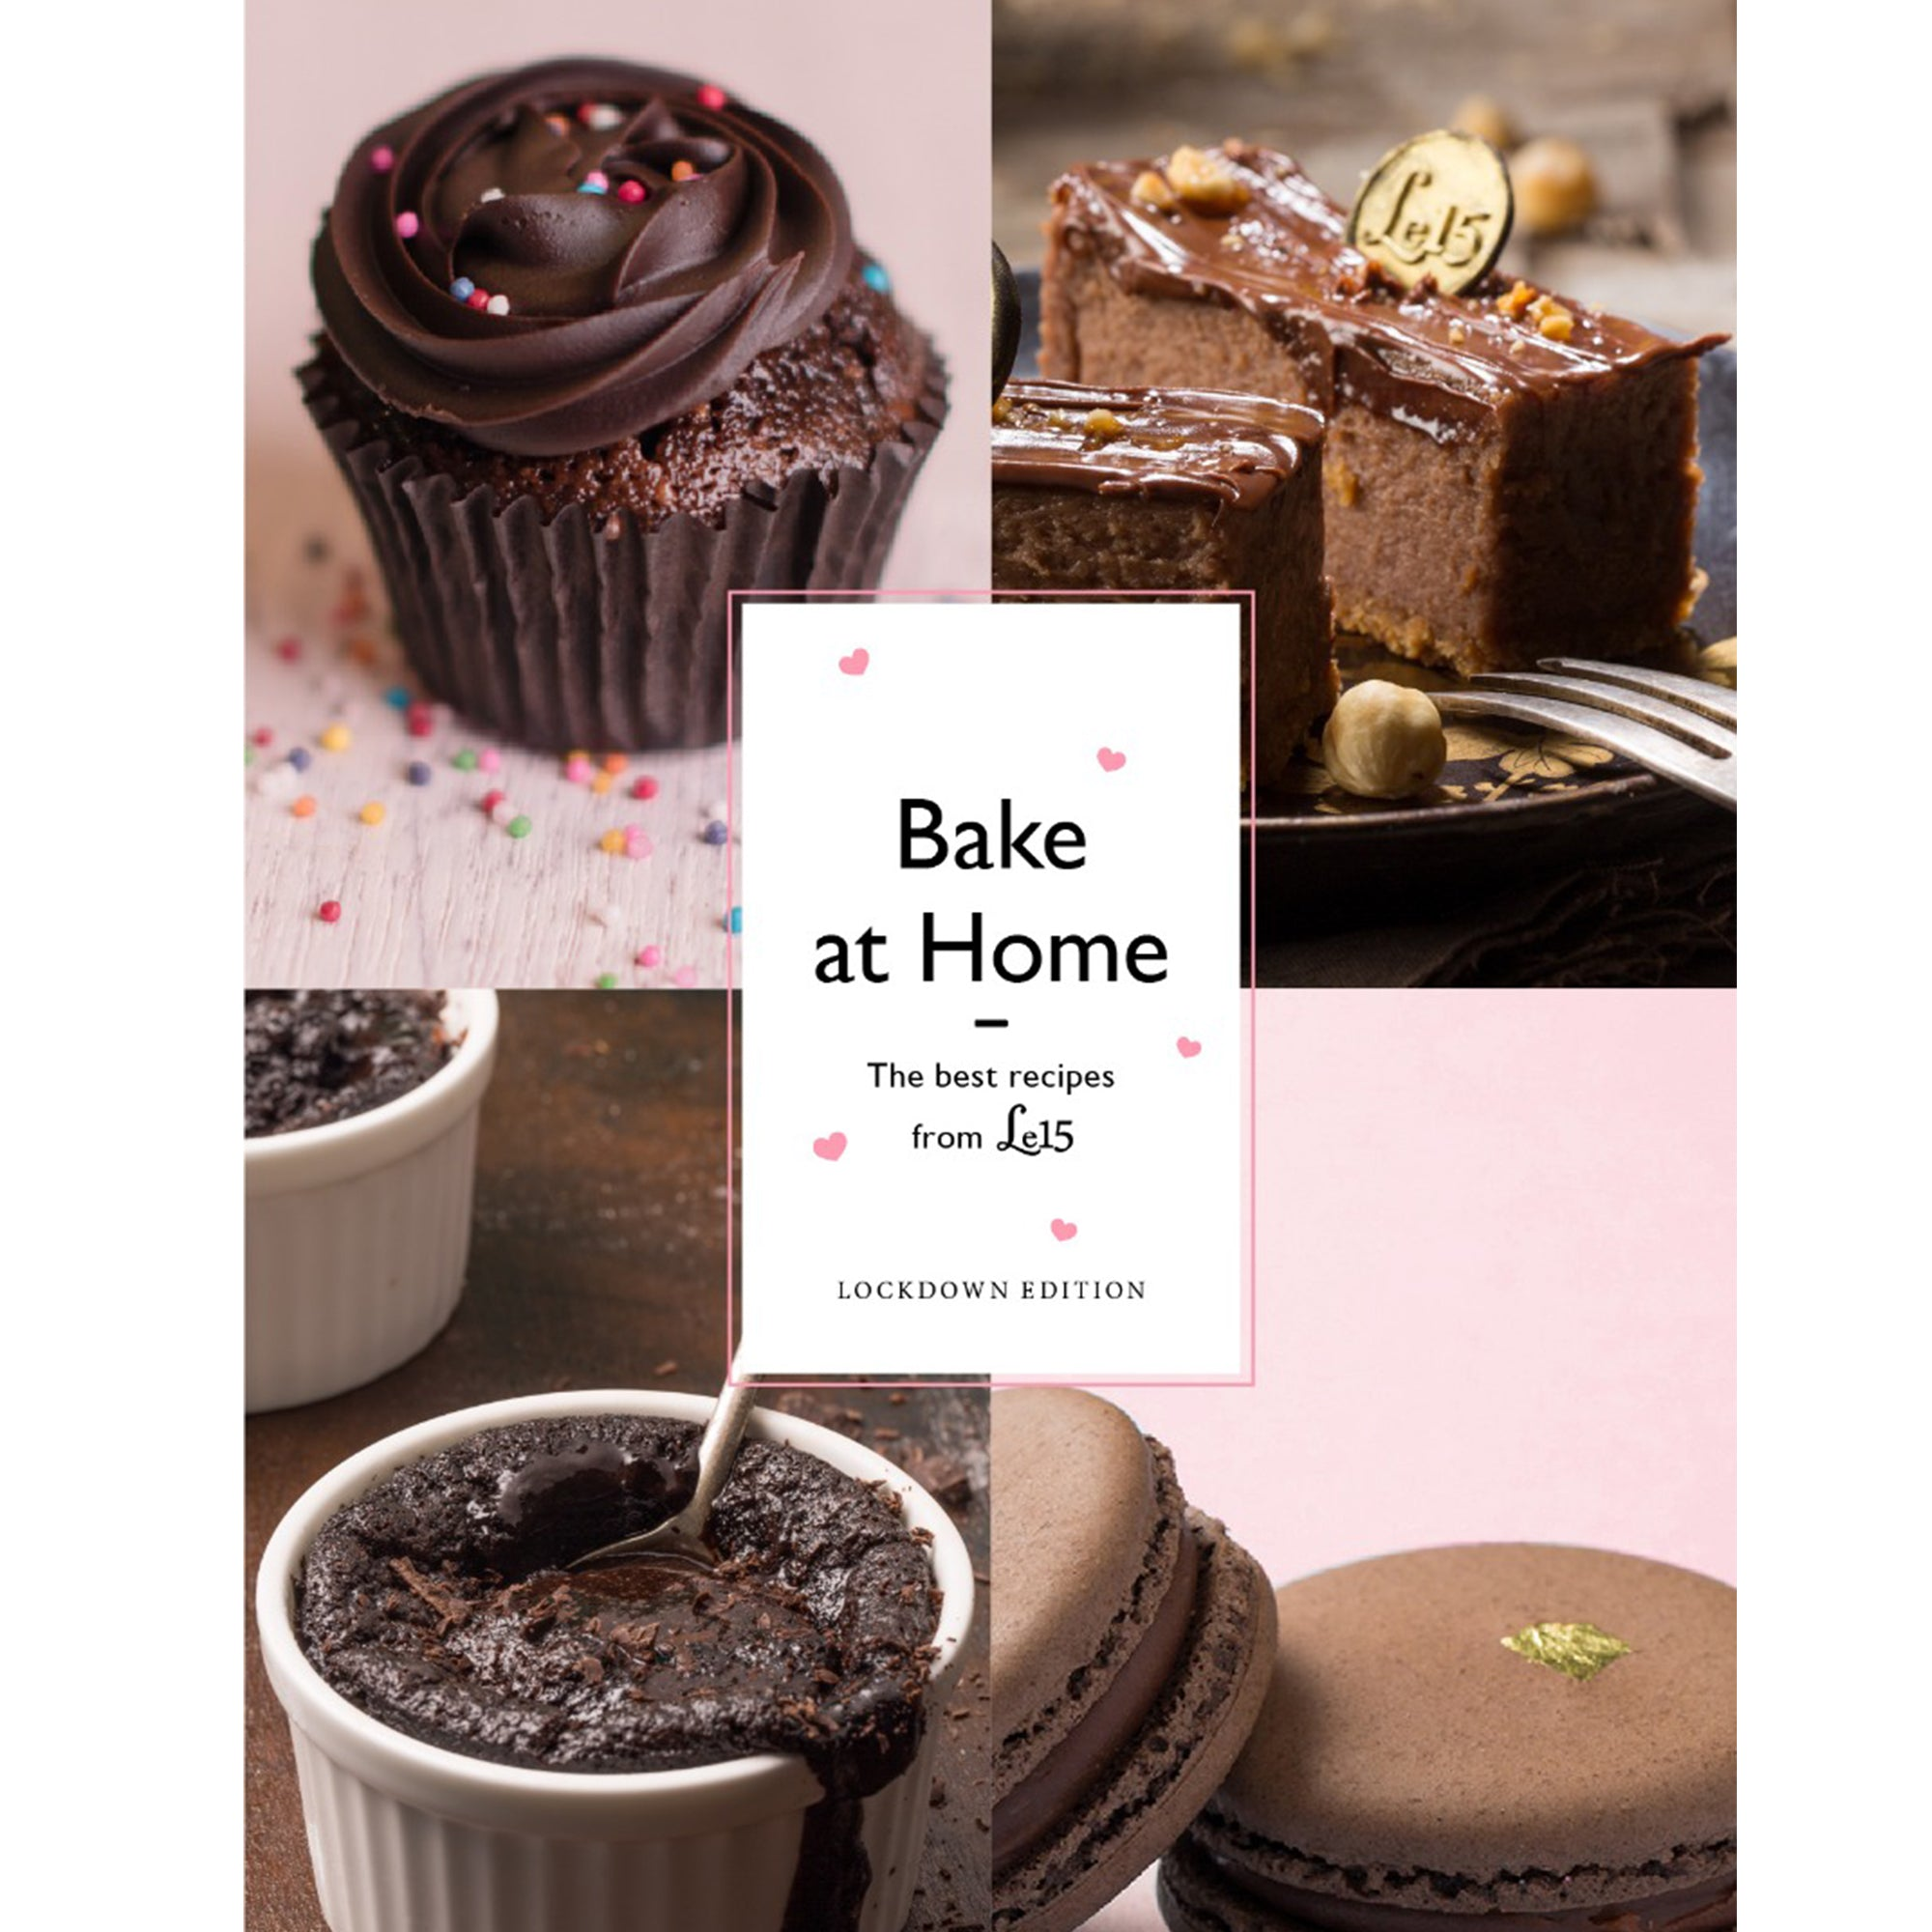 Bake At Home (E-book)